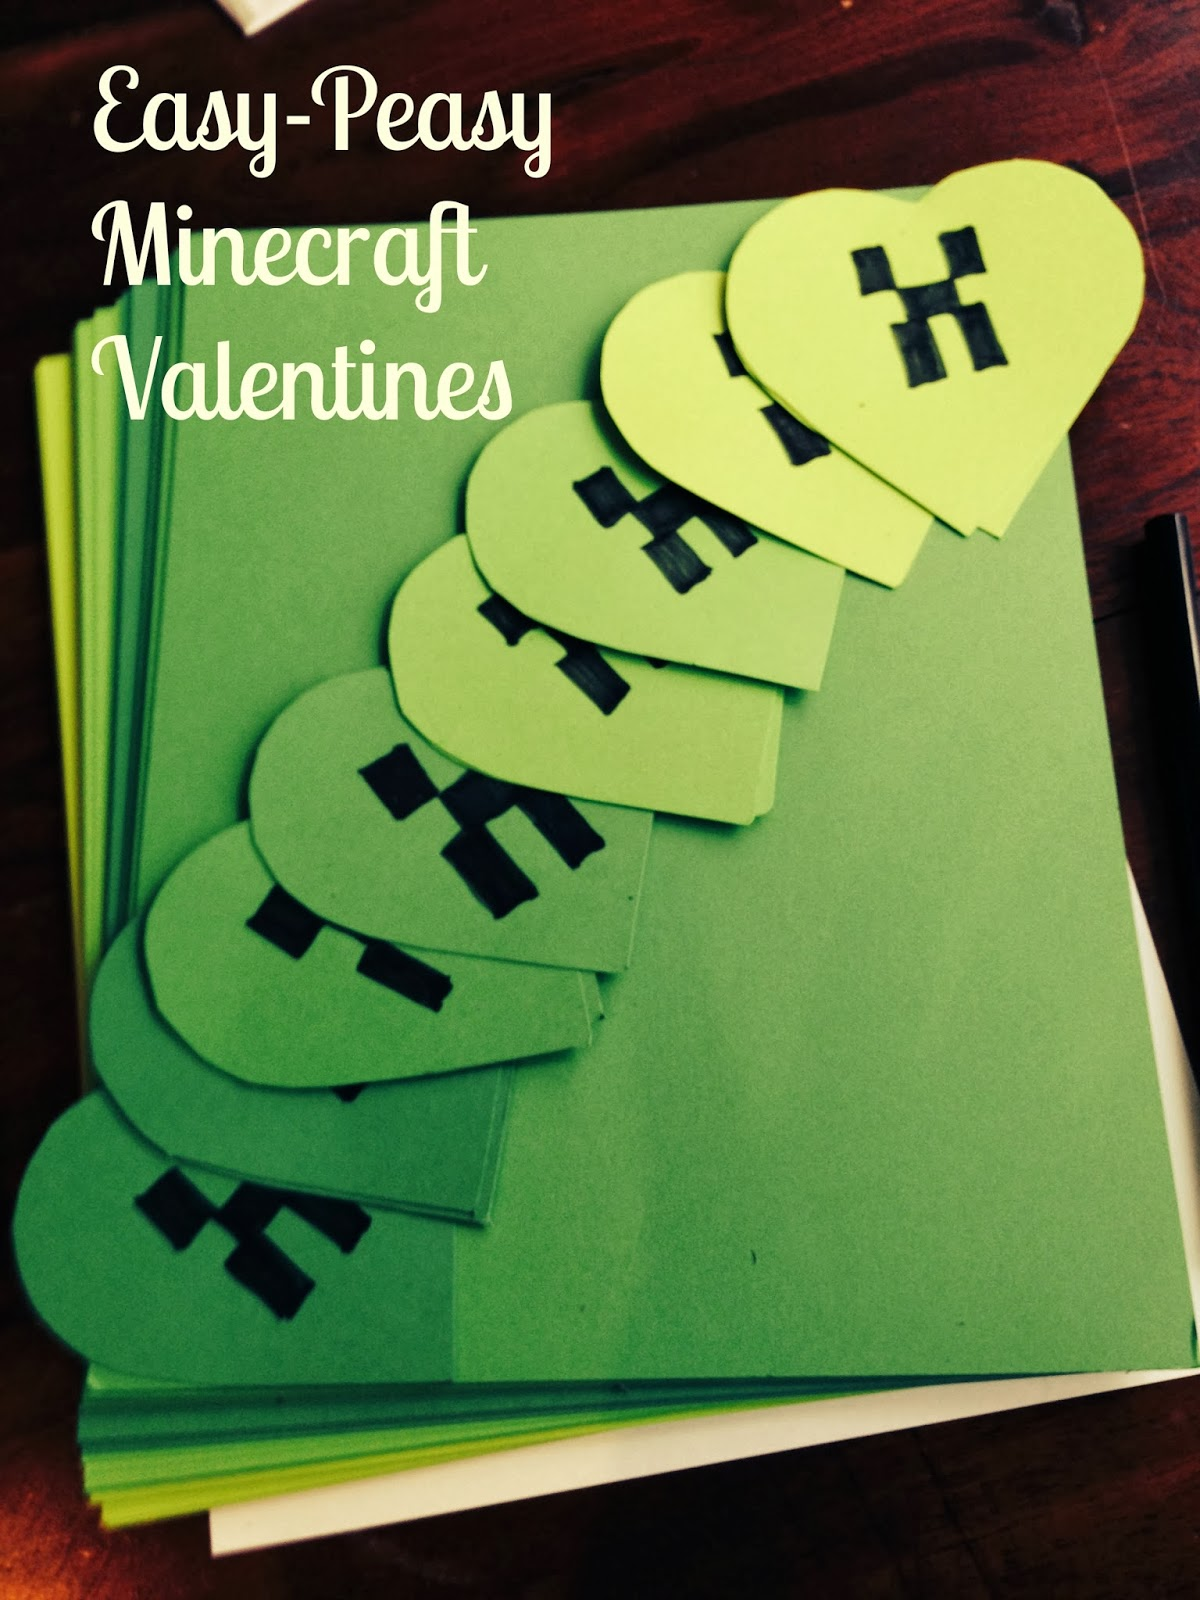 Easy Peasy And Fun: Blog: Easy-Peasy Minecraft Valentines